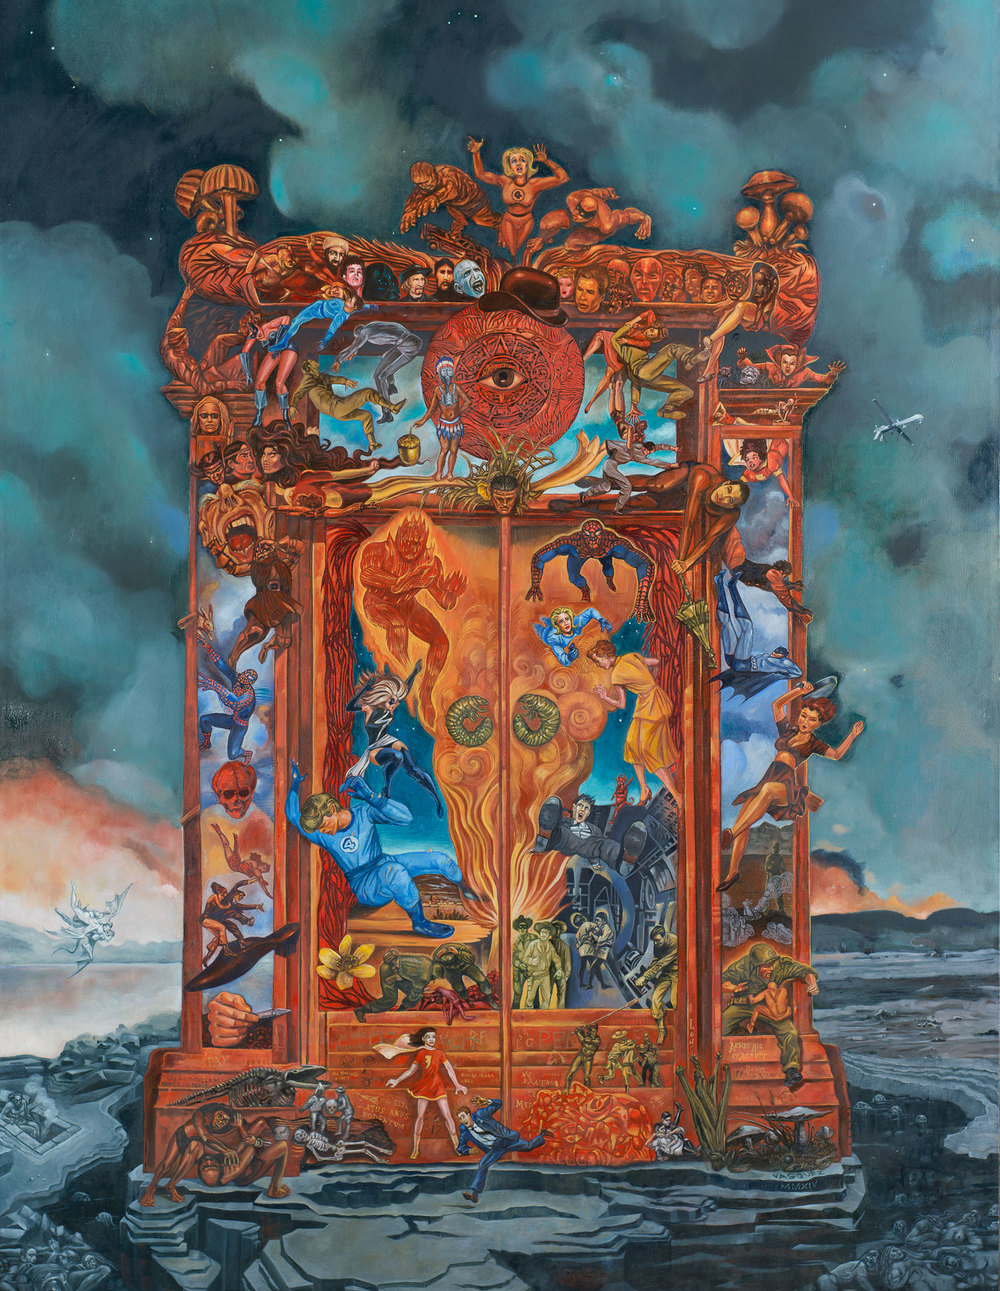 "Title: Gates of Heck  Dimensions: 43"" x 50"" Medium: Oil on canvas Date: 2014 Notes: Rodin's sculpture,  Le Porte de l'Enfer , serves as a conceptual and structural framework for this painting. The original mythical and literary figures of Dante's  Inferno  that Rodin brought to life are updated and replaced with characters from the universe of comic book super heroes.  Porte de l'Enfer  has haunted me since I was a student and saw it for the first time in front of the Stanford Art Museum. Gates of Heck is my homage to this great masterpiece."